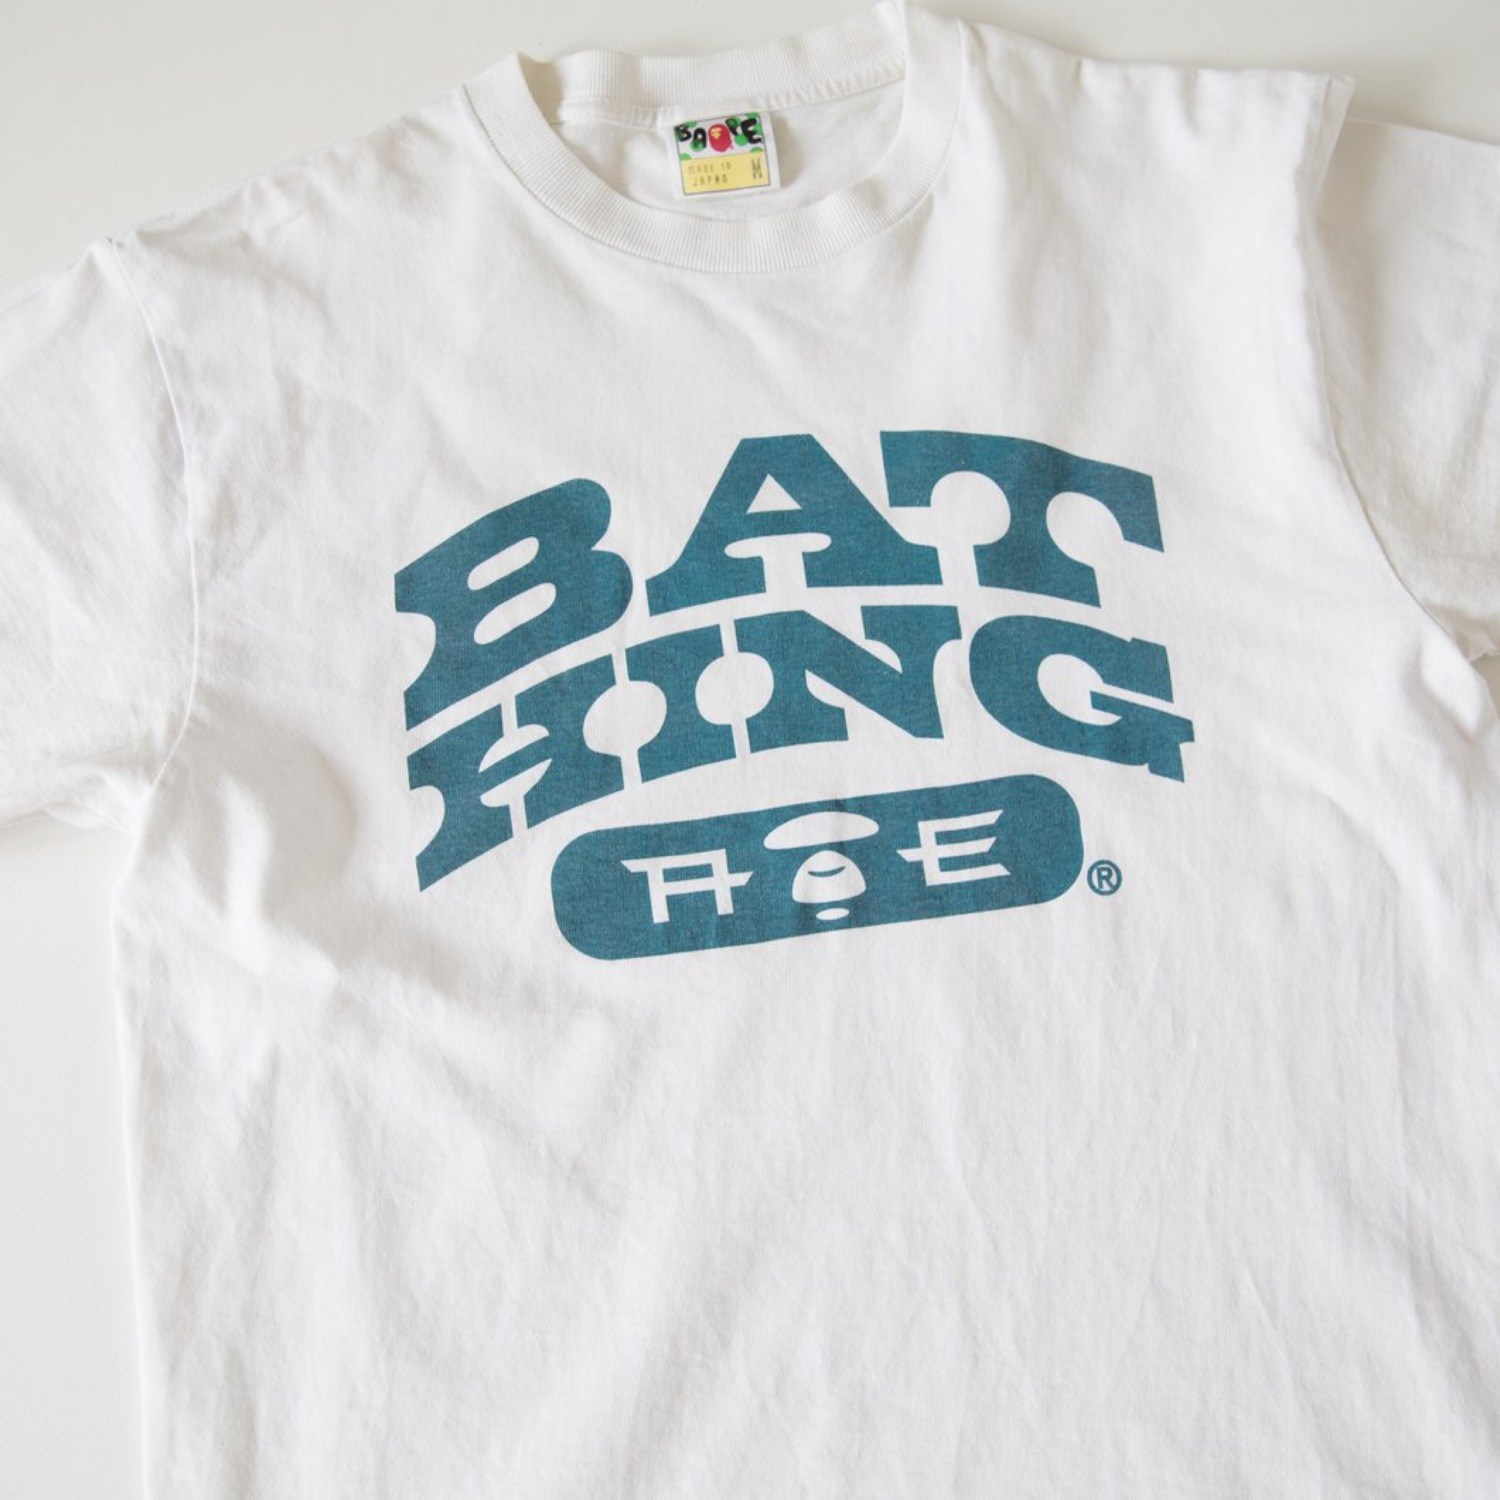 Bape Logo Tee (Used - Medium)